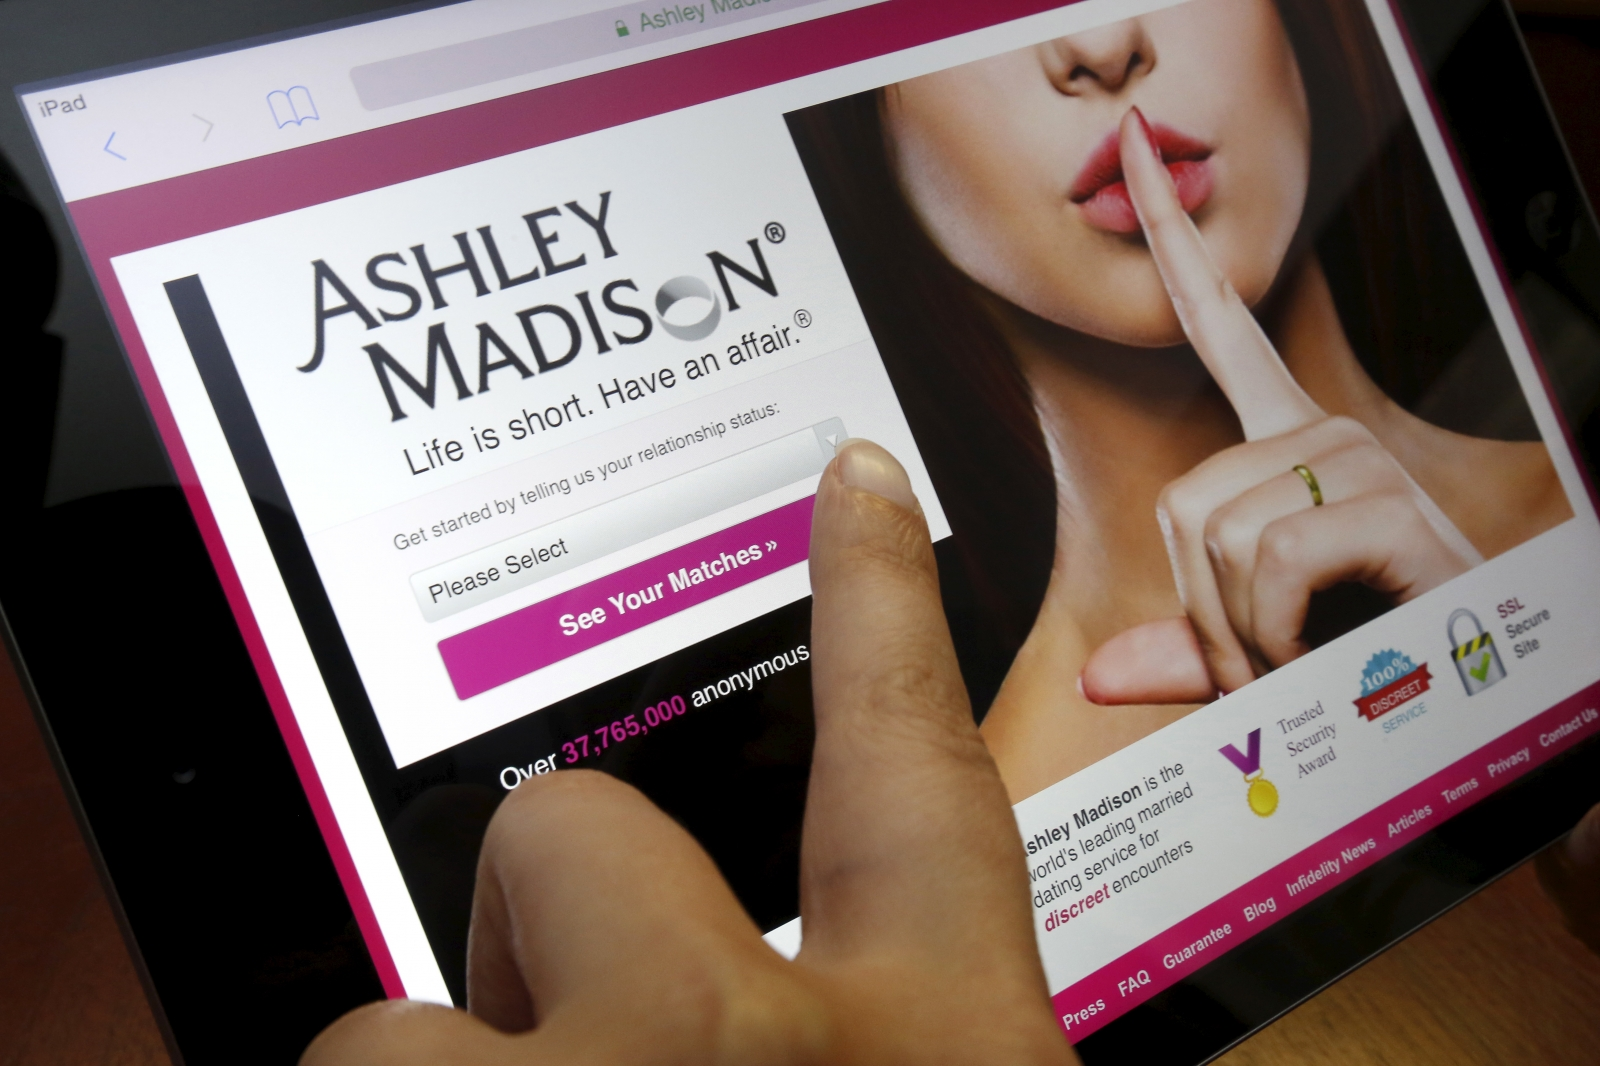 Now you can search the Ashley Madison cheaters list